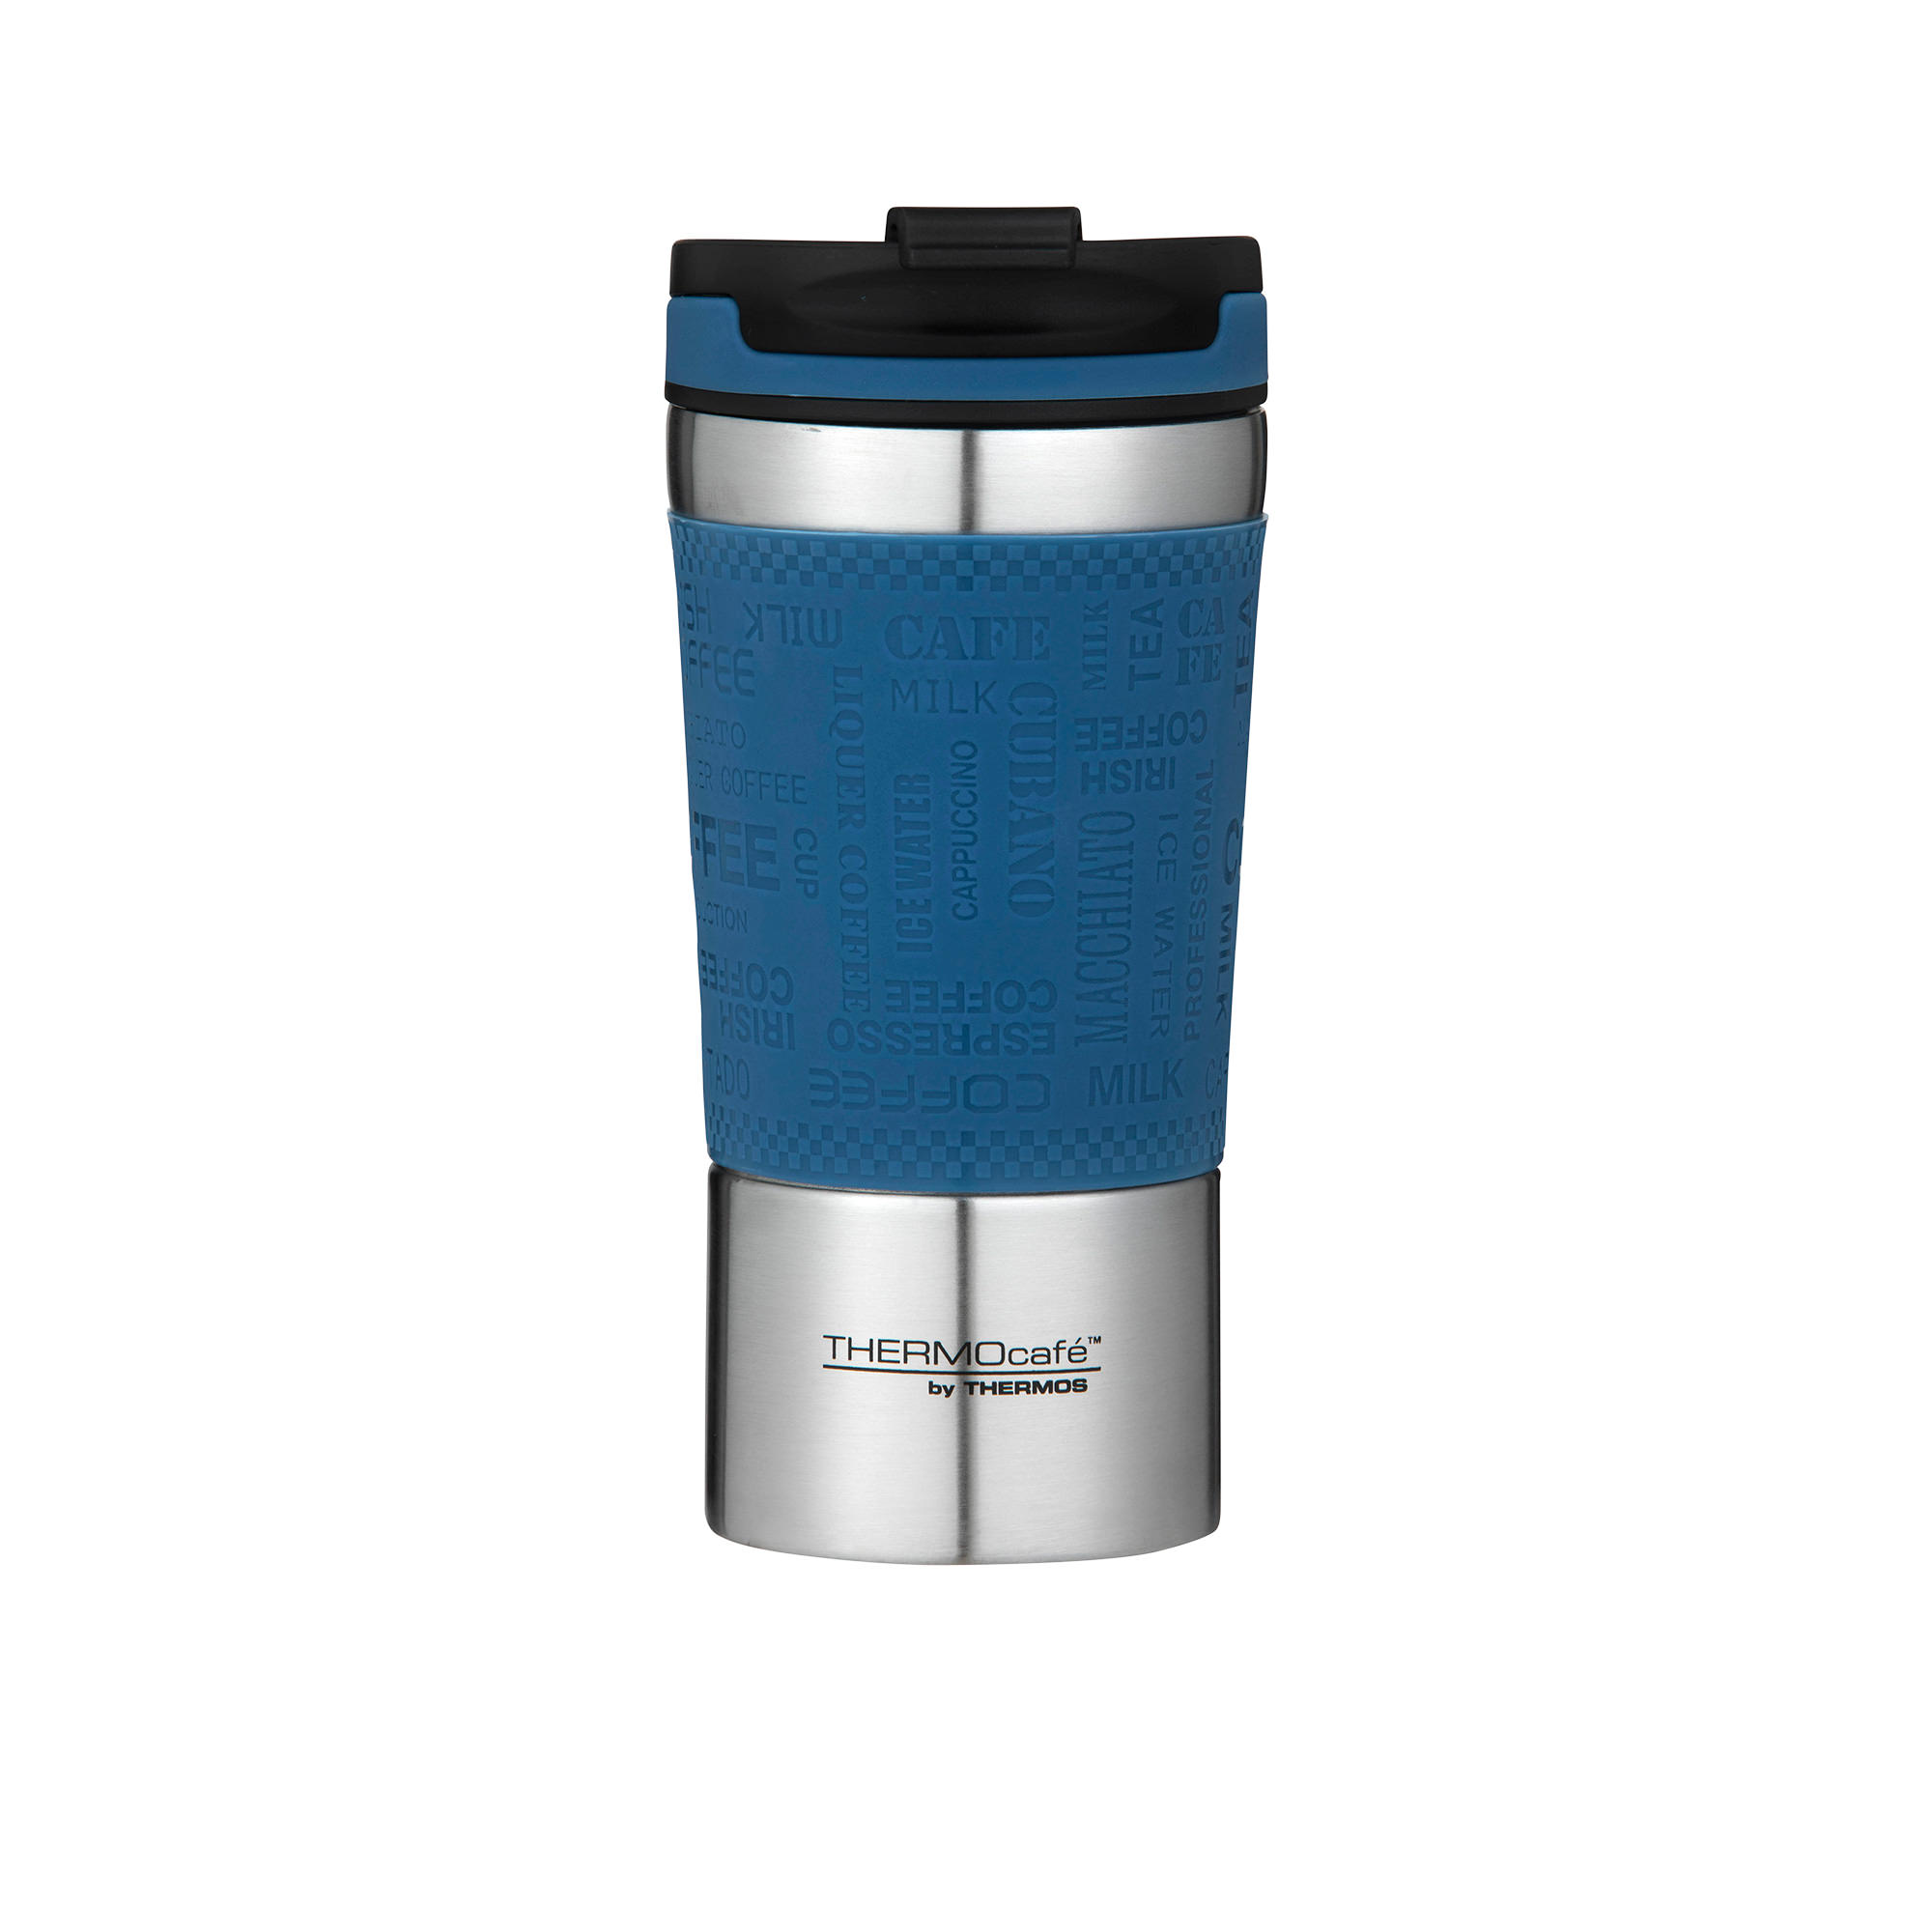 Thermos Thermocafe Vacuum Insulated Travel Cup 350ml Dark Blue